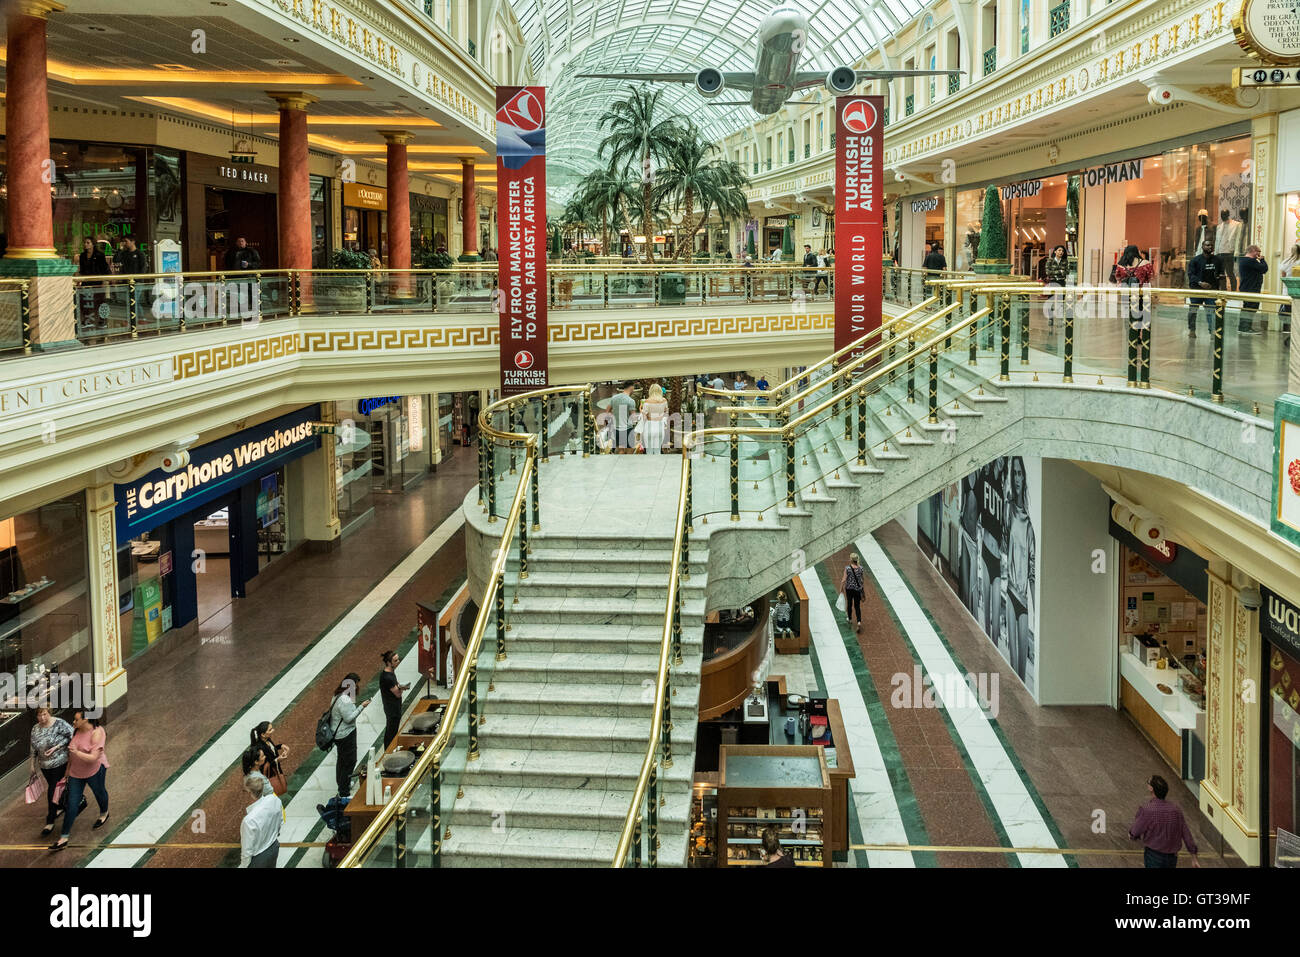 The interior of the Regnt crescent of the intu Trafford Centre shopping mall. Trafford Manchester North West England. - Stock Image